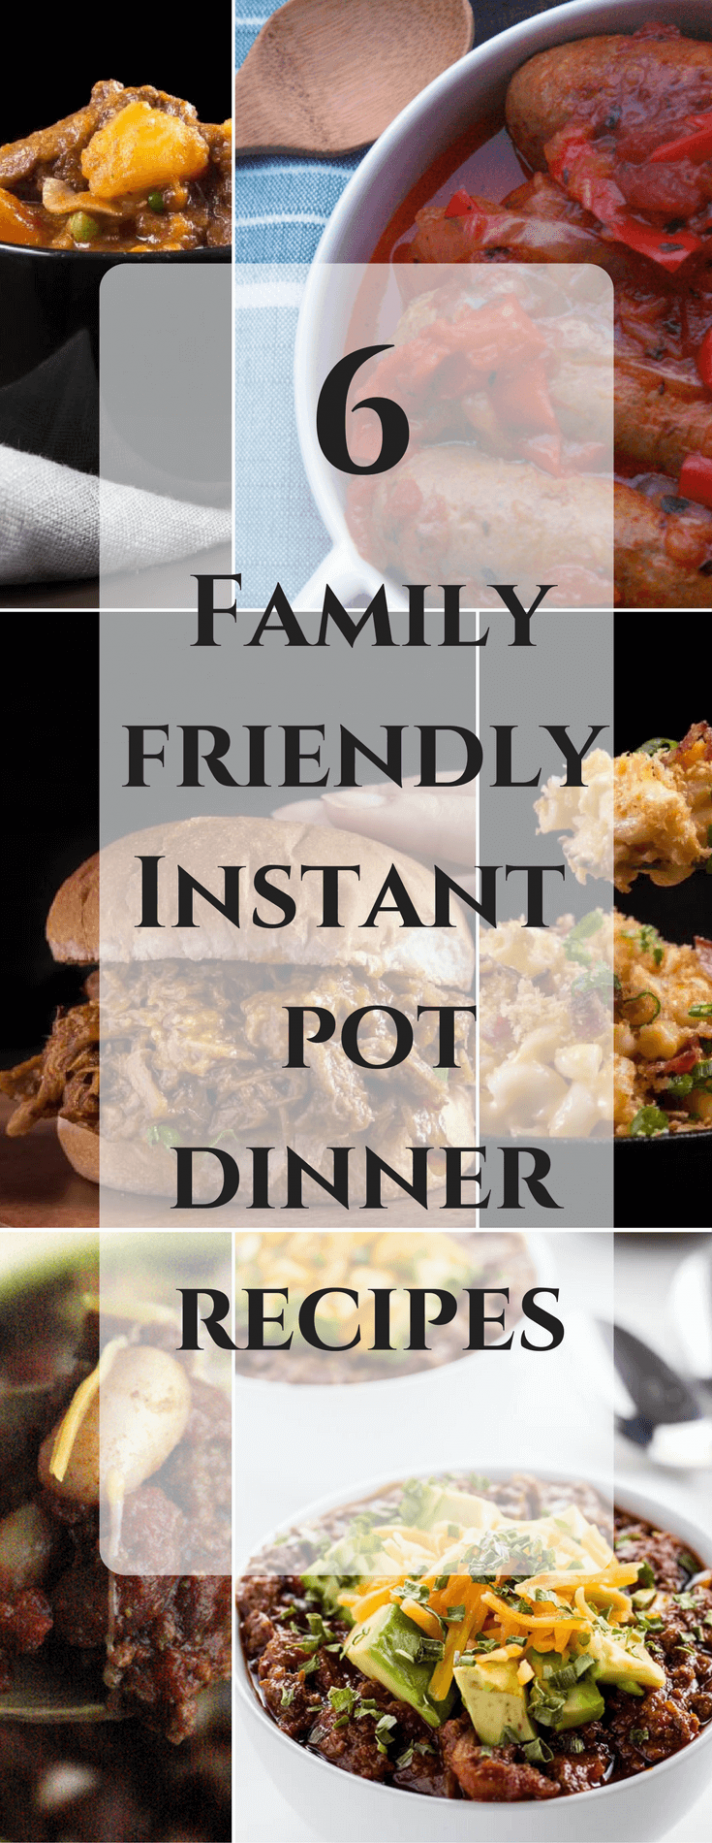 6 Family Friendly Instant Pot Dinner Recipes - instant pot recipes dinner